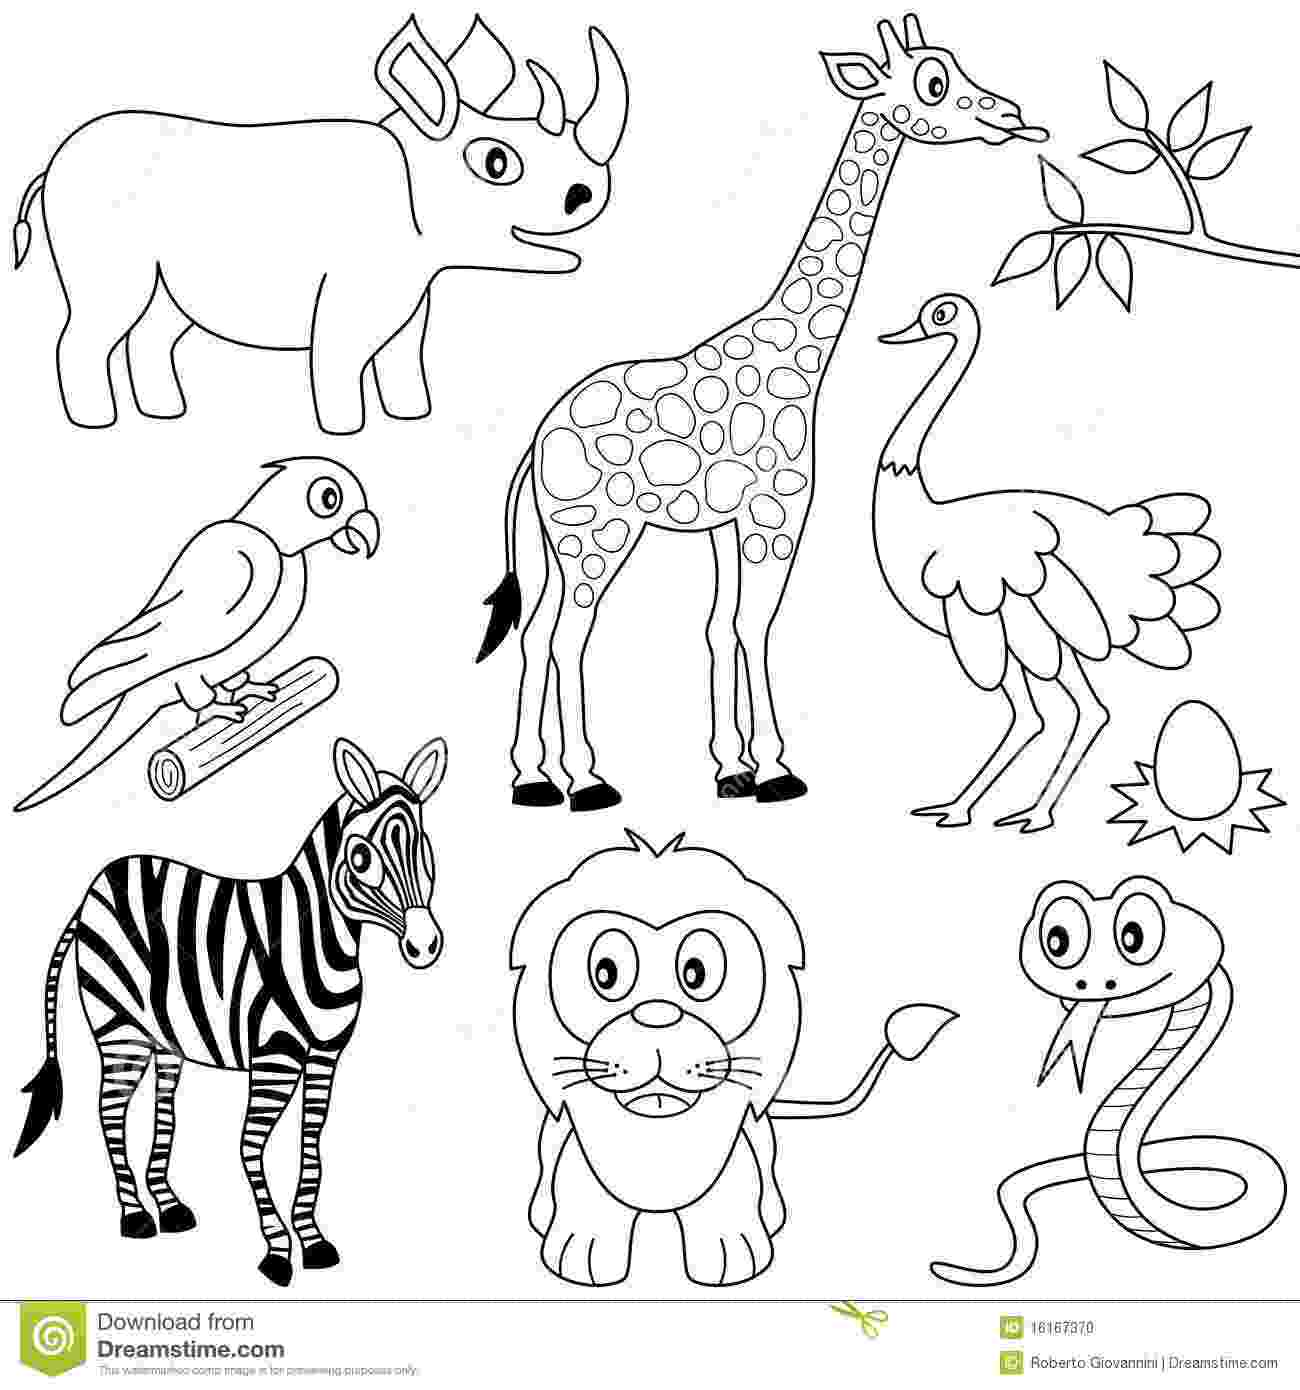 african animals coloring pages african animals coloring pages getcoloringpagescom animals coloring african pages